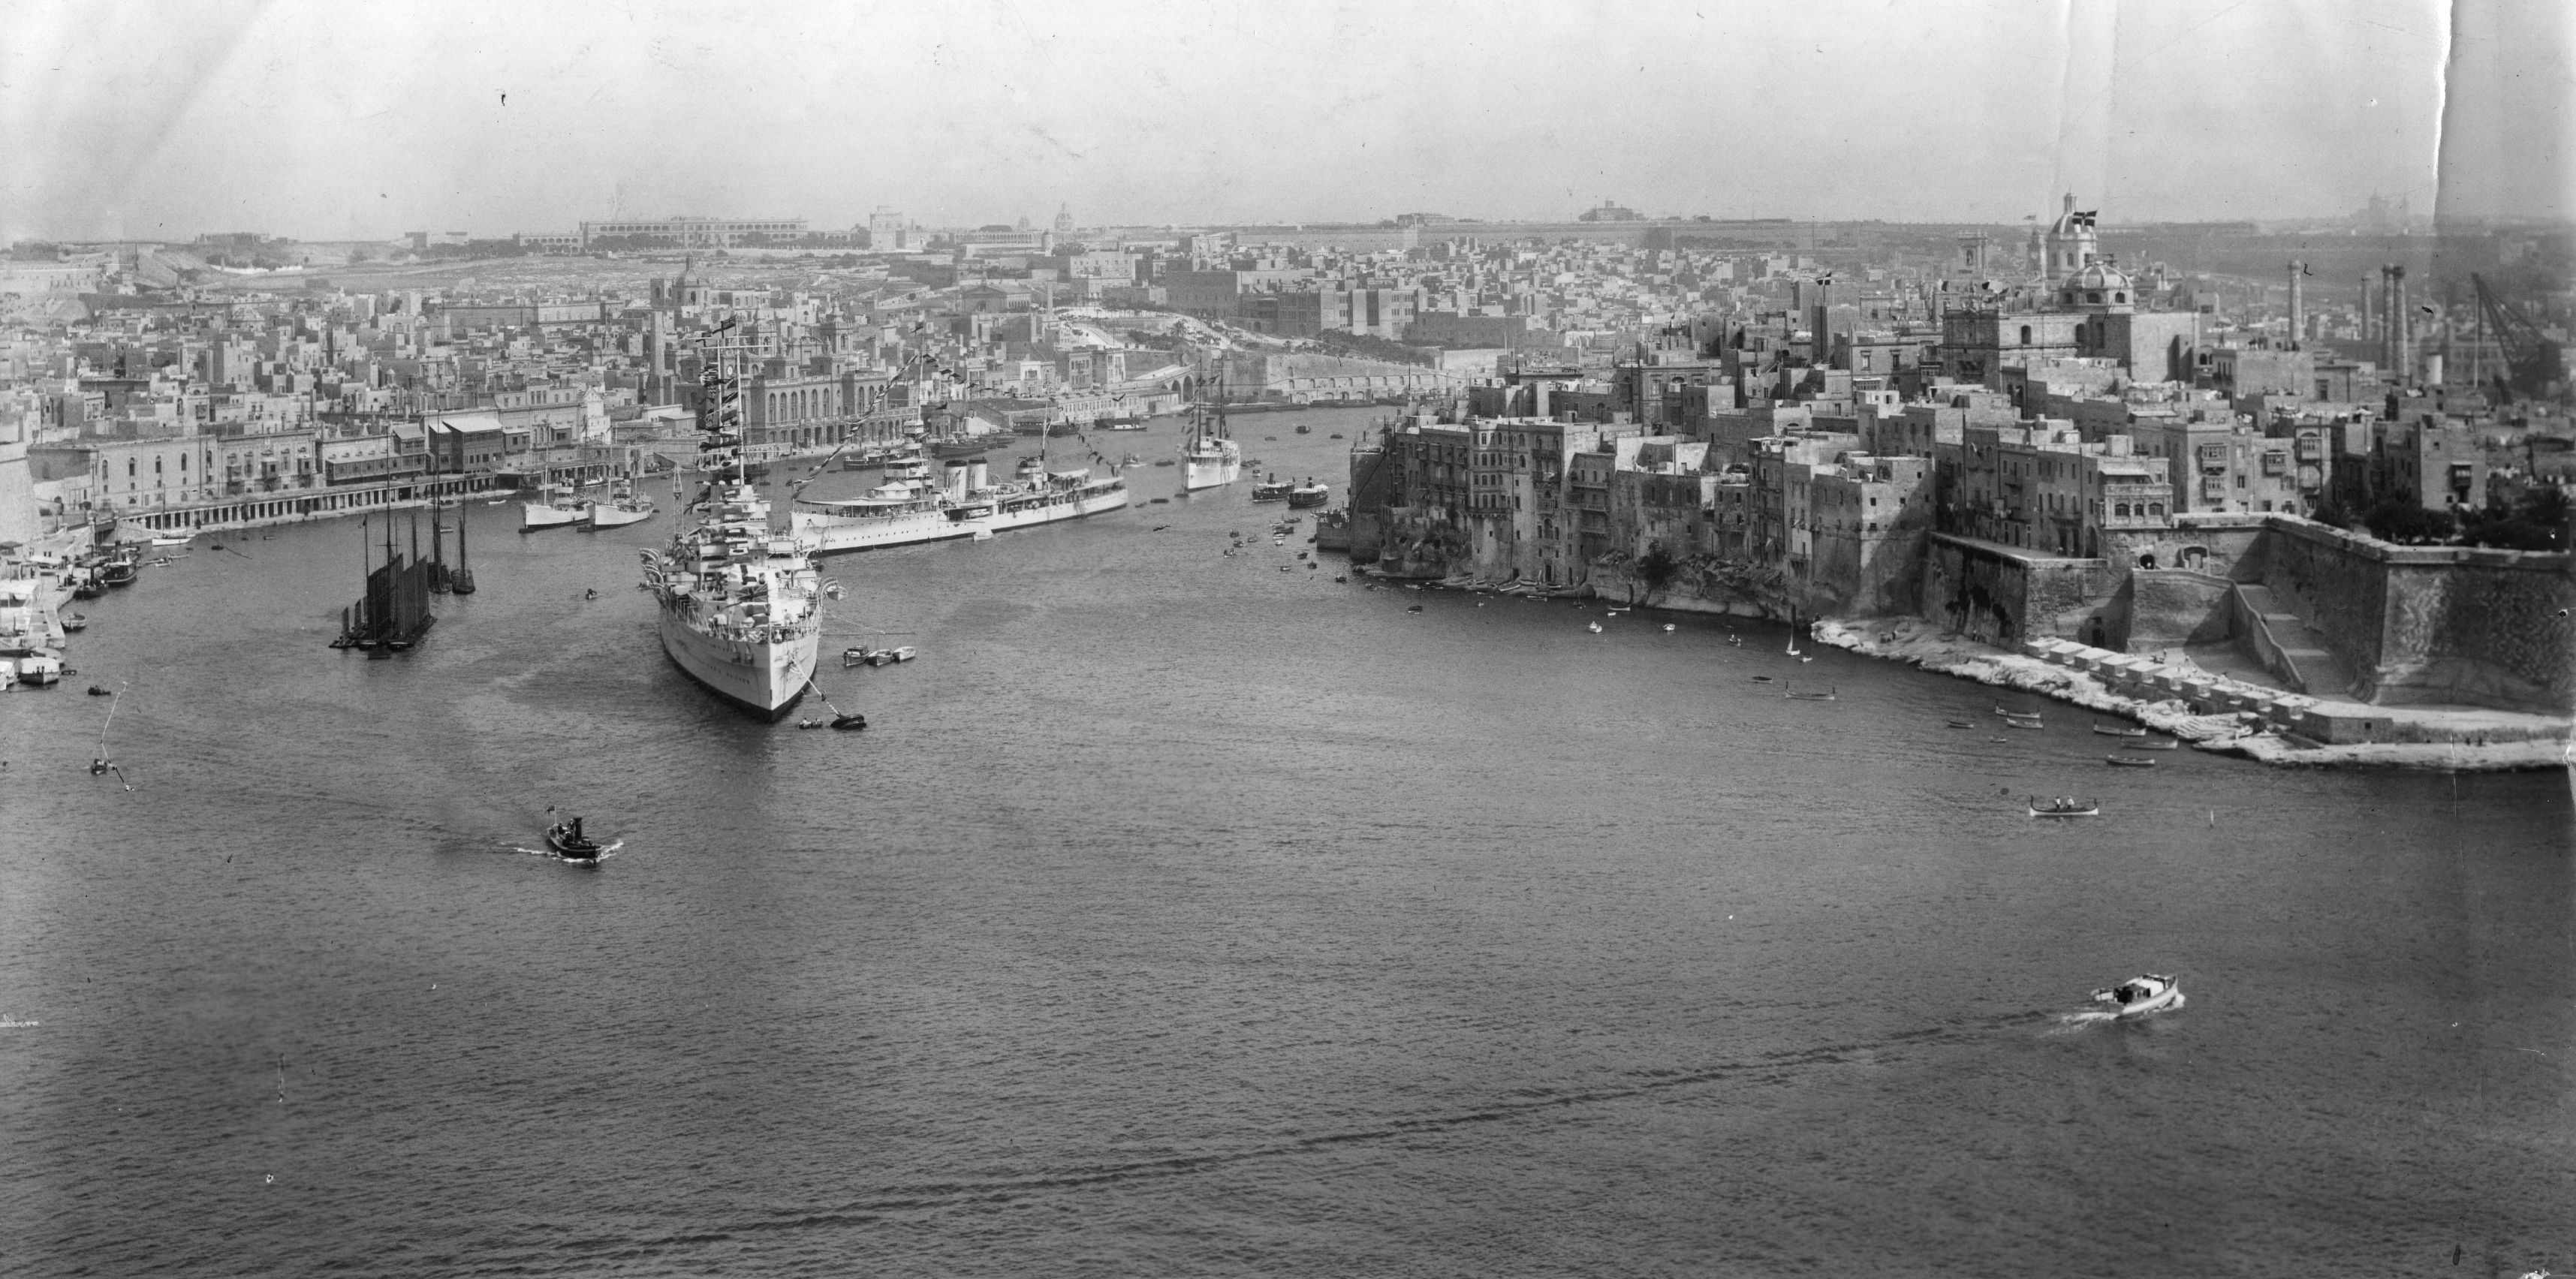 A view of Valletta during the Second World War, showing its harbour filled with naval hardware. (Photo by Picture Post/Hulton Archive/Getty Images)